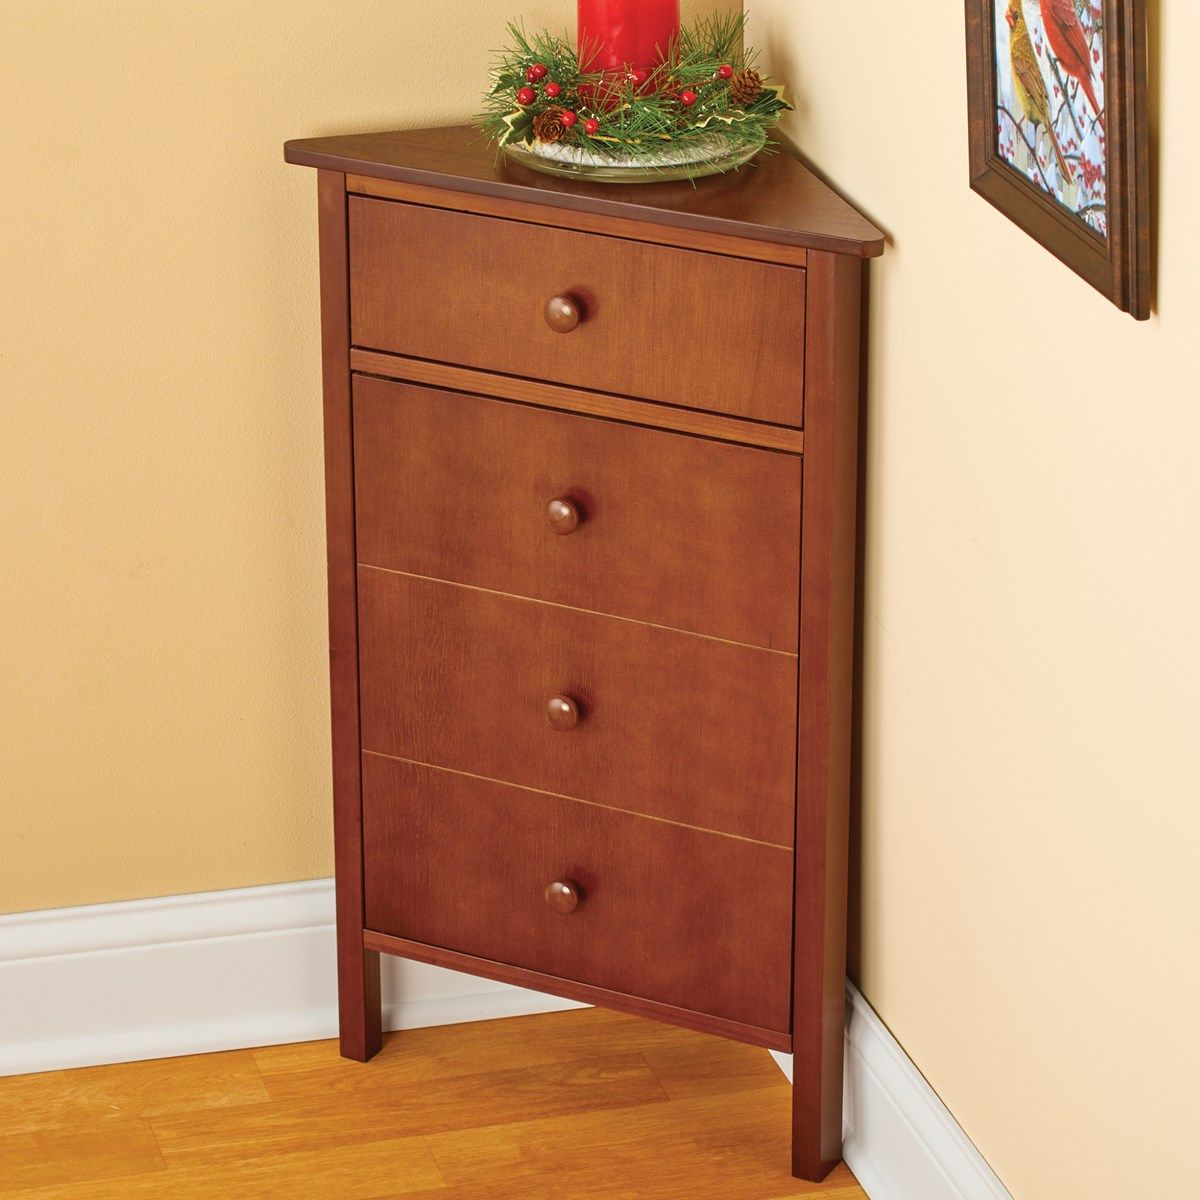 Corner Wooden Cabinet With Storage And Magnetic Closure Collections Etc Wooden Cabinets Collections Etc Storage Spaces